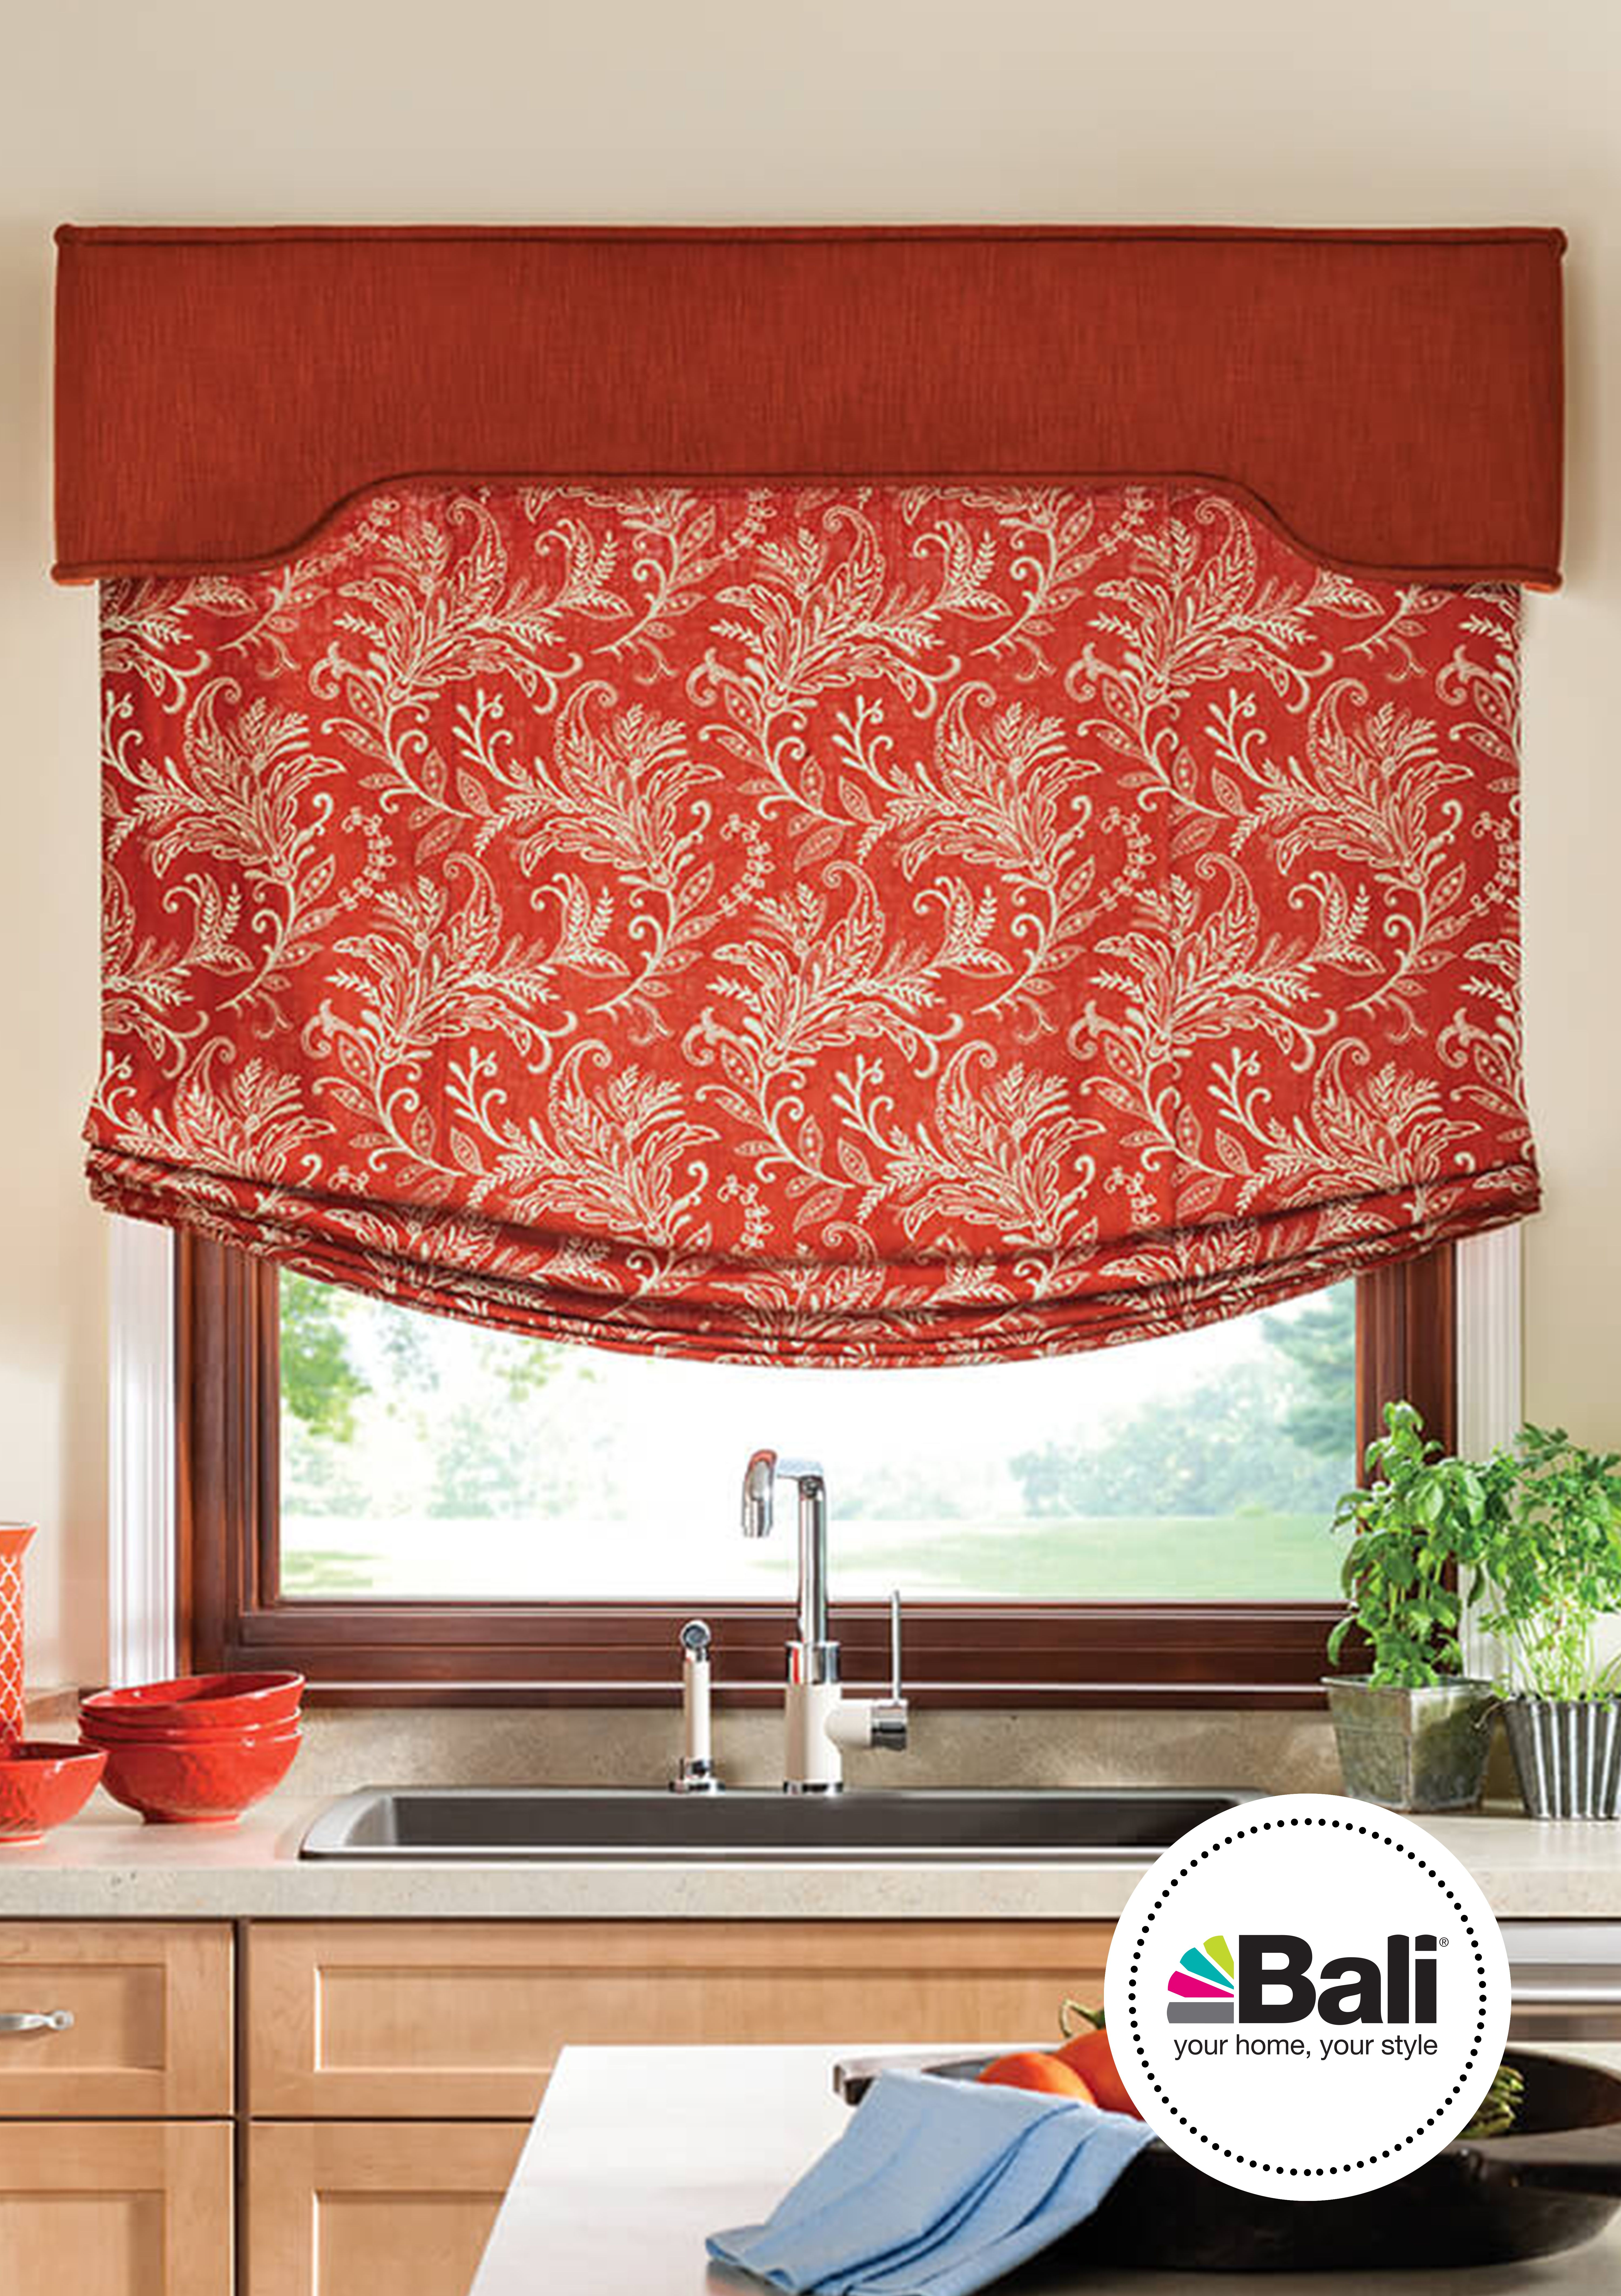 Relaxed Roman Shade With Cordless Lift Bazaar Off Broadway 1101 Fabric Wrapped Traditional Cornice With Self Wel Home Kitchen Window Treatments Roman Shades